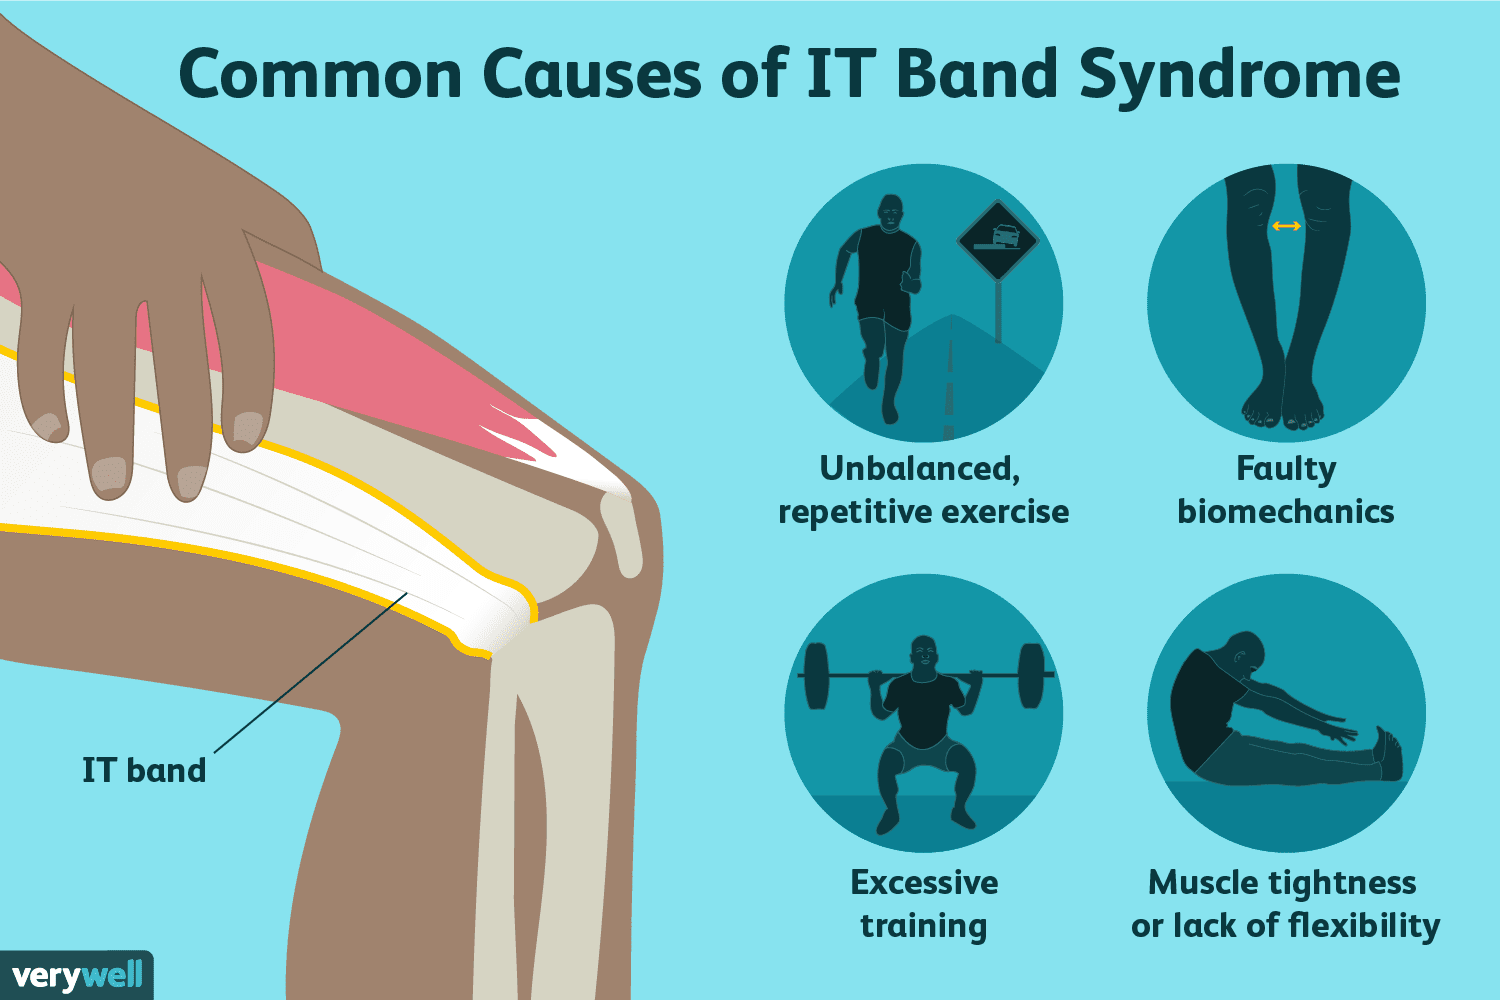 iliotibial band syndrome causes